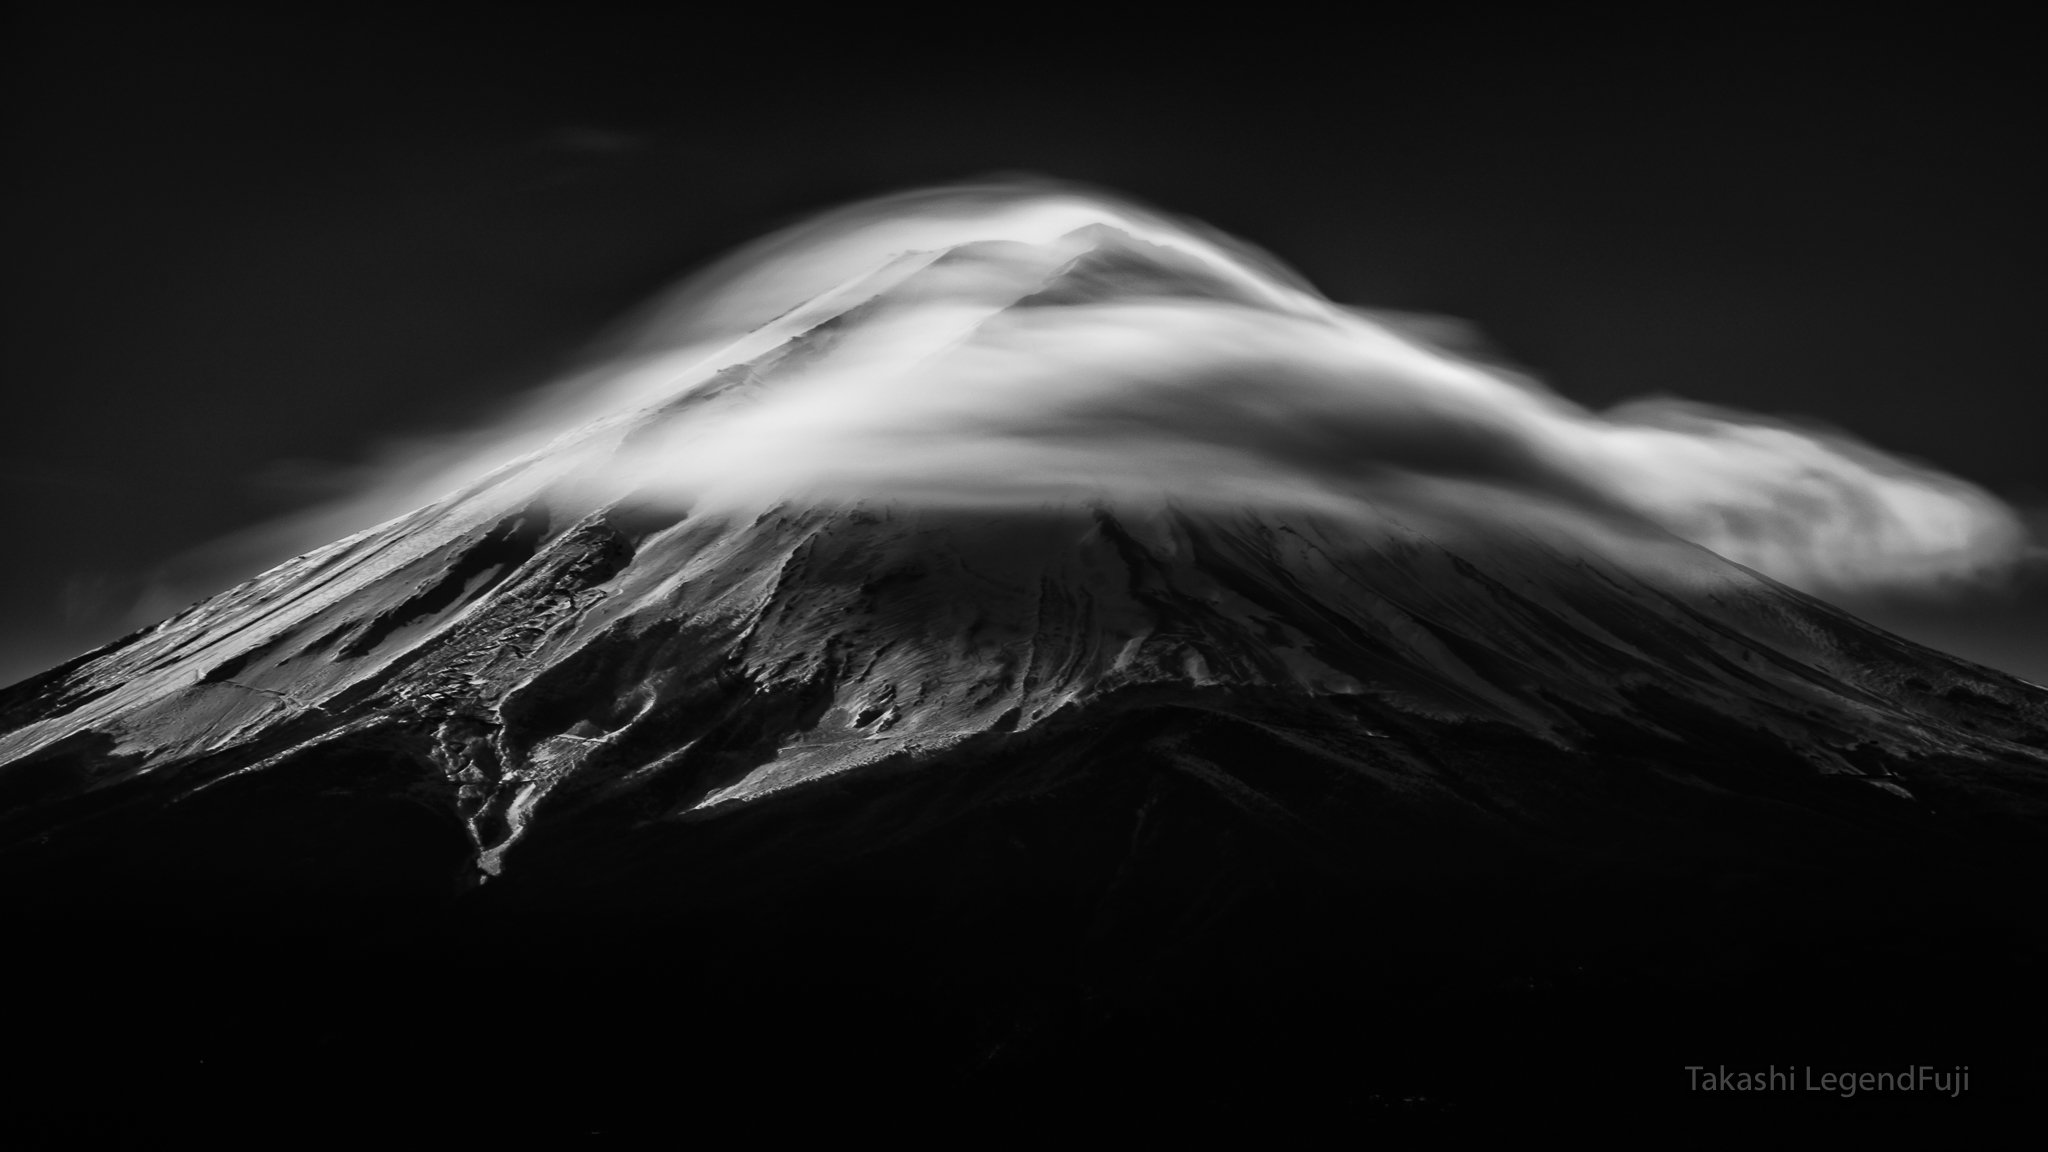 fuji,mountain,japan,cloud,lenticular,snow,black & white,monochrome,simple,amazing,fantastic,wonderful,landscape,, Takashi